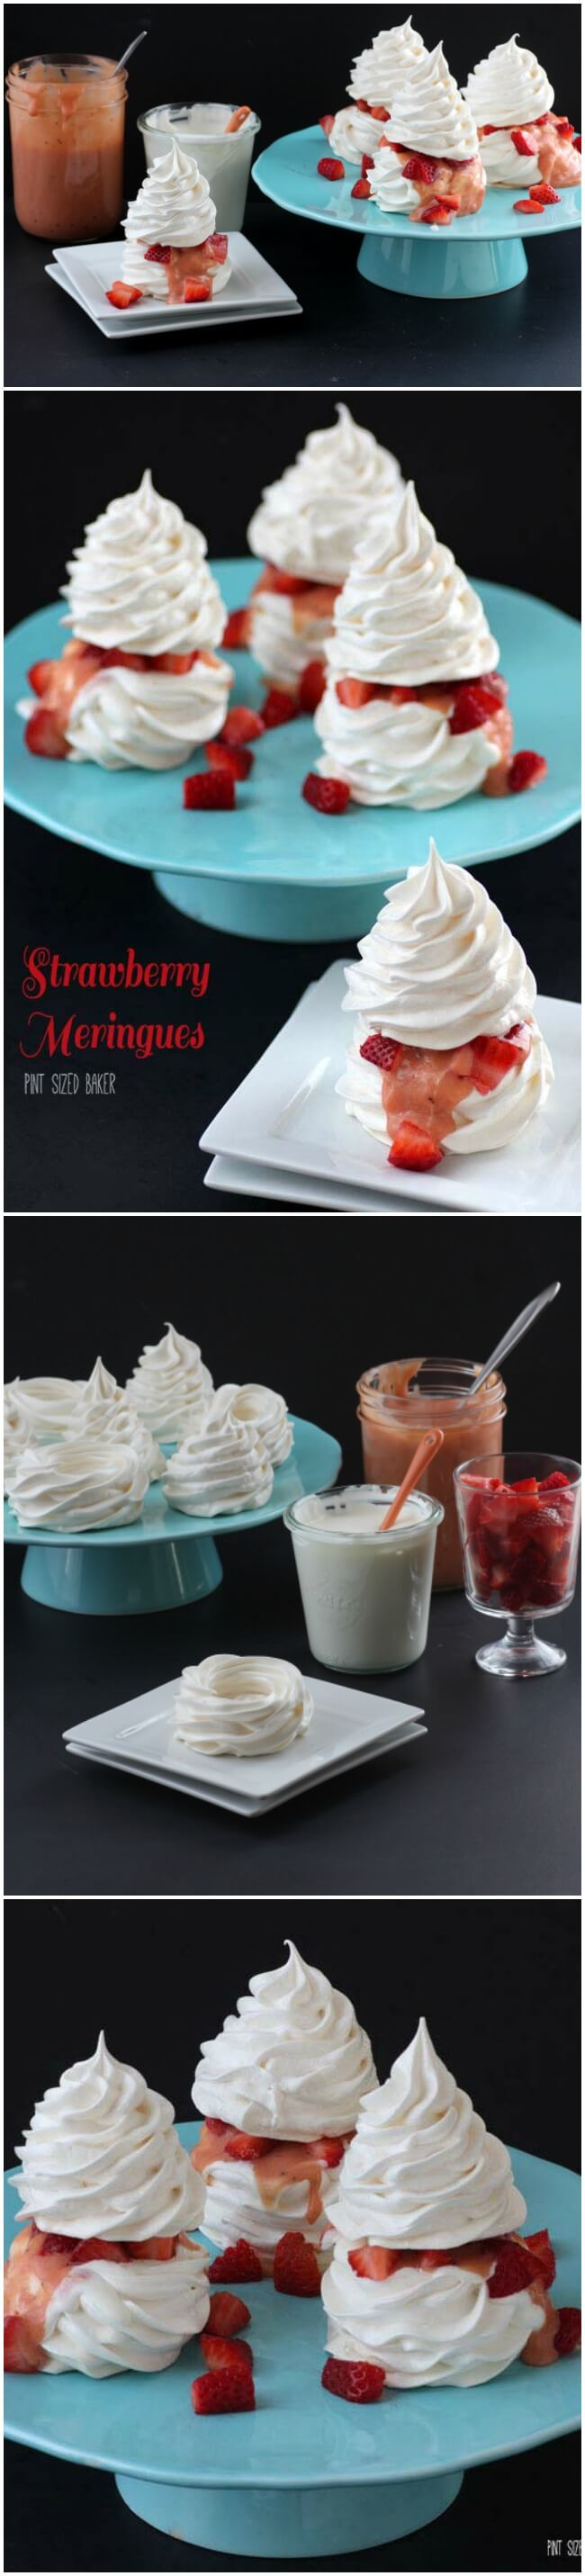 These Strawberry Meringues start off with a meringue shell, get filled with Crème Fraîche and strawberry rhubarb curd and then topped off with fresh strawberries and a meringue top!